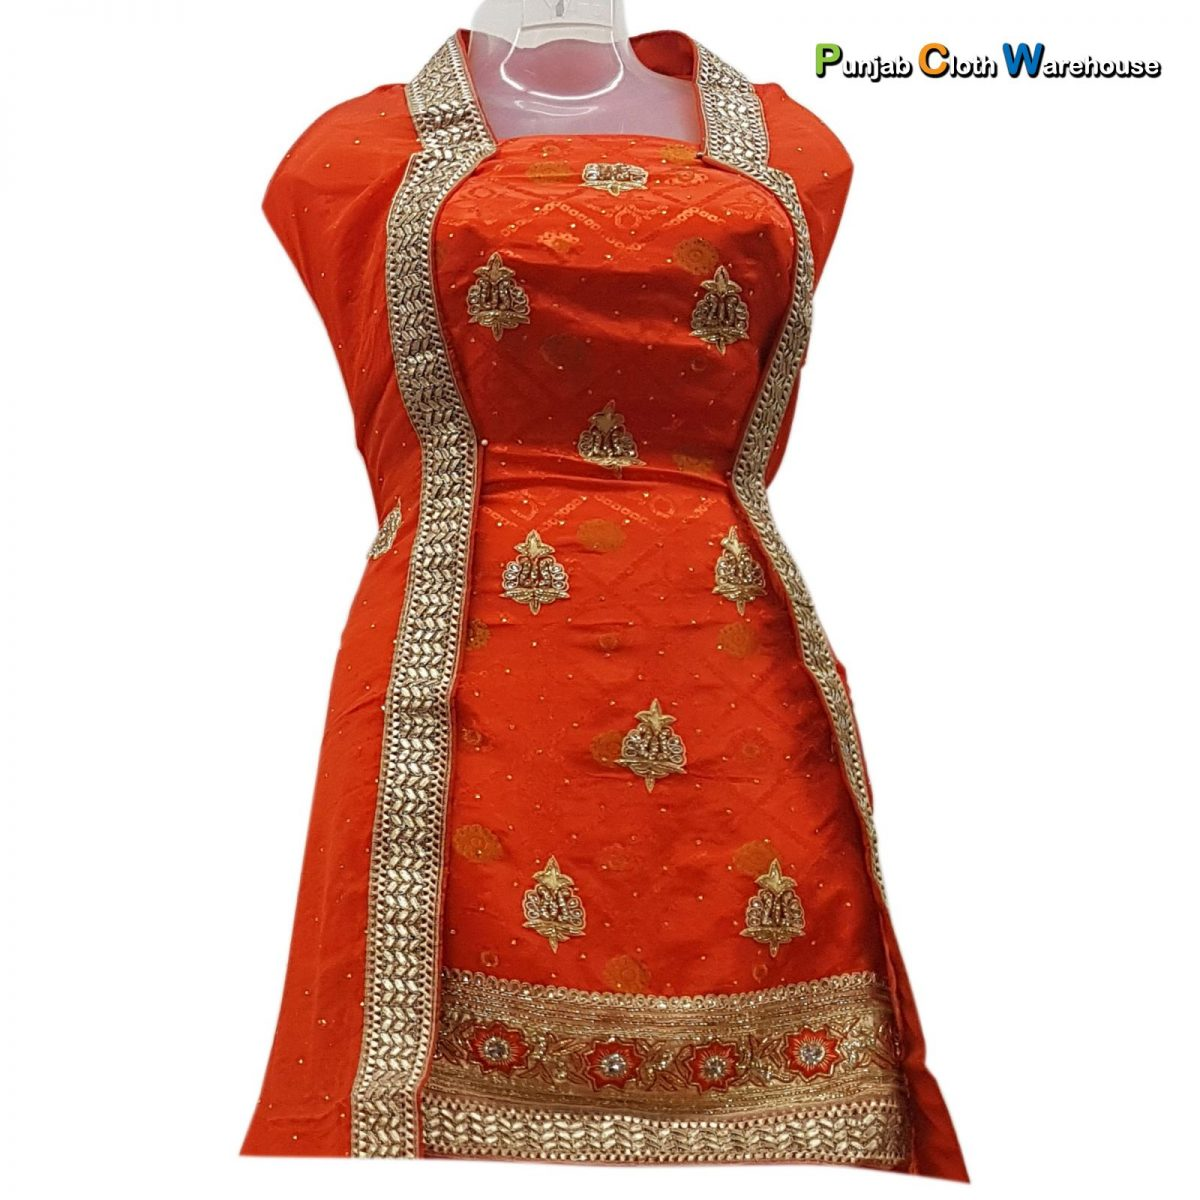 Ladies Suits - Cut Piece - Punjab Cloth Warehouse, Surrey (9)